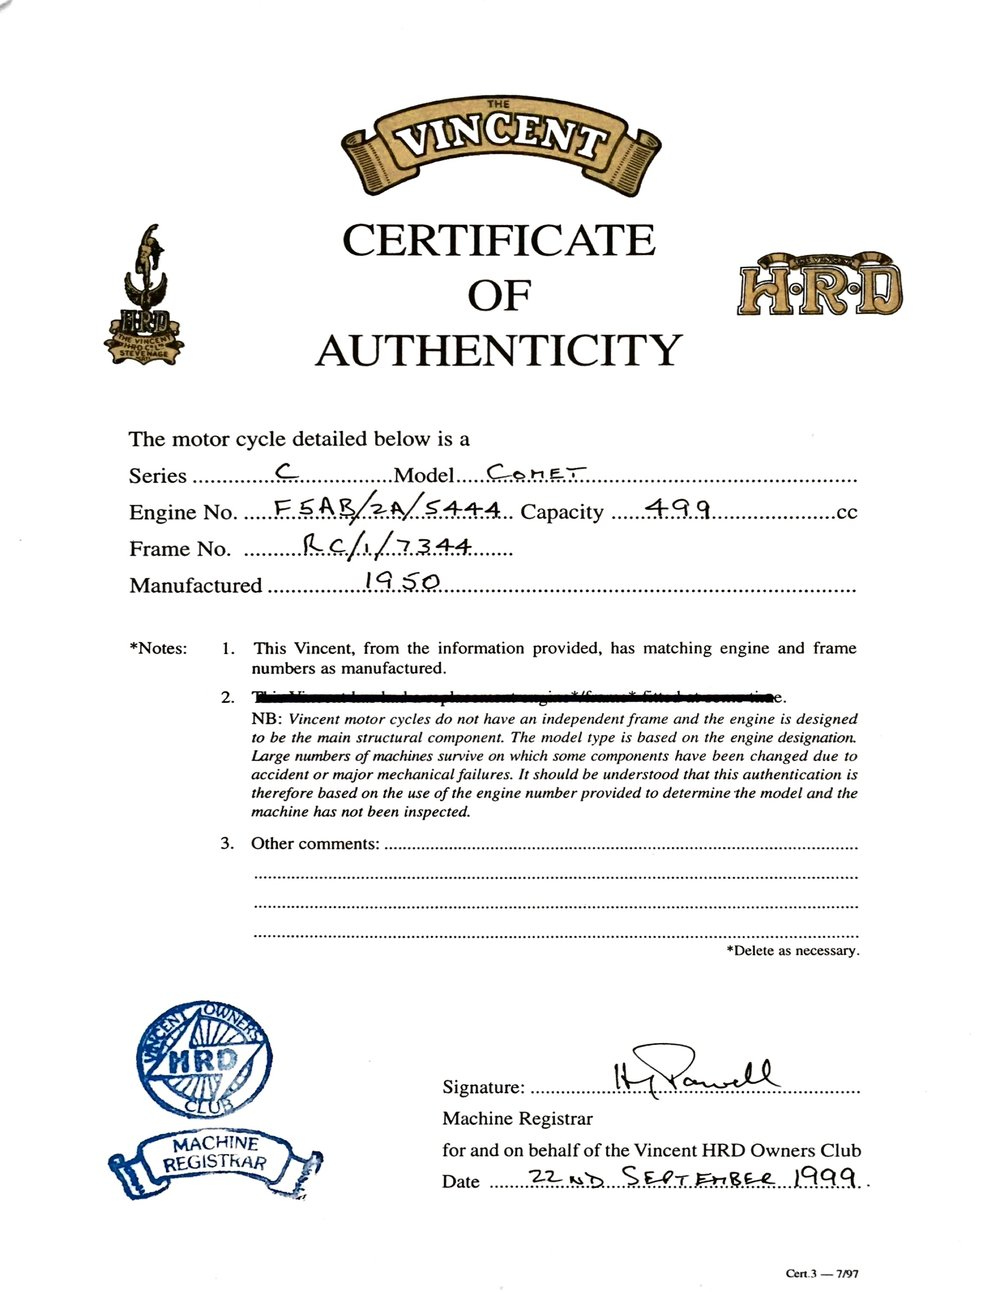 Vincent_Certificate_of_Authenticity.jpg